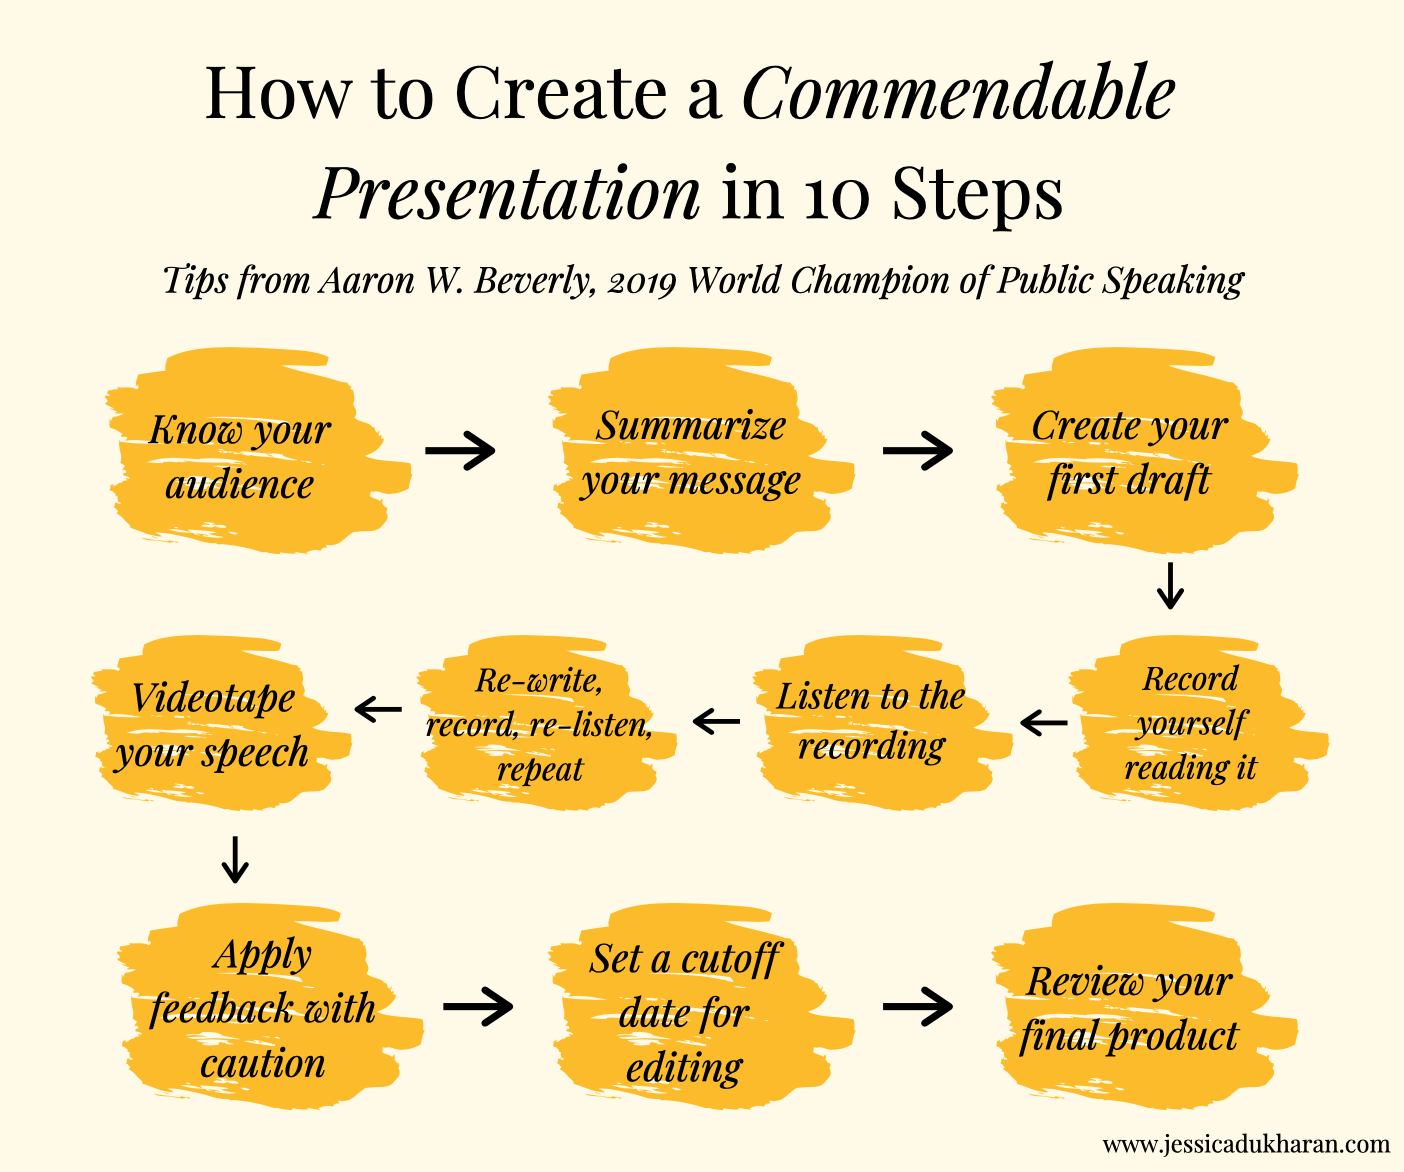 How to Create a Commendable Presentation in 10 Steps | Tips from Aaron W. Beverly, 2019 World Champion of Public Speaking